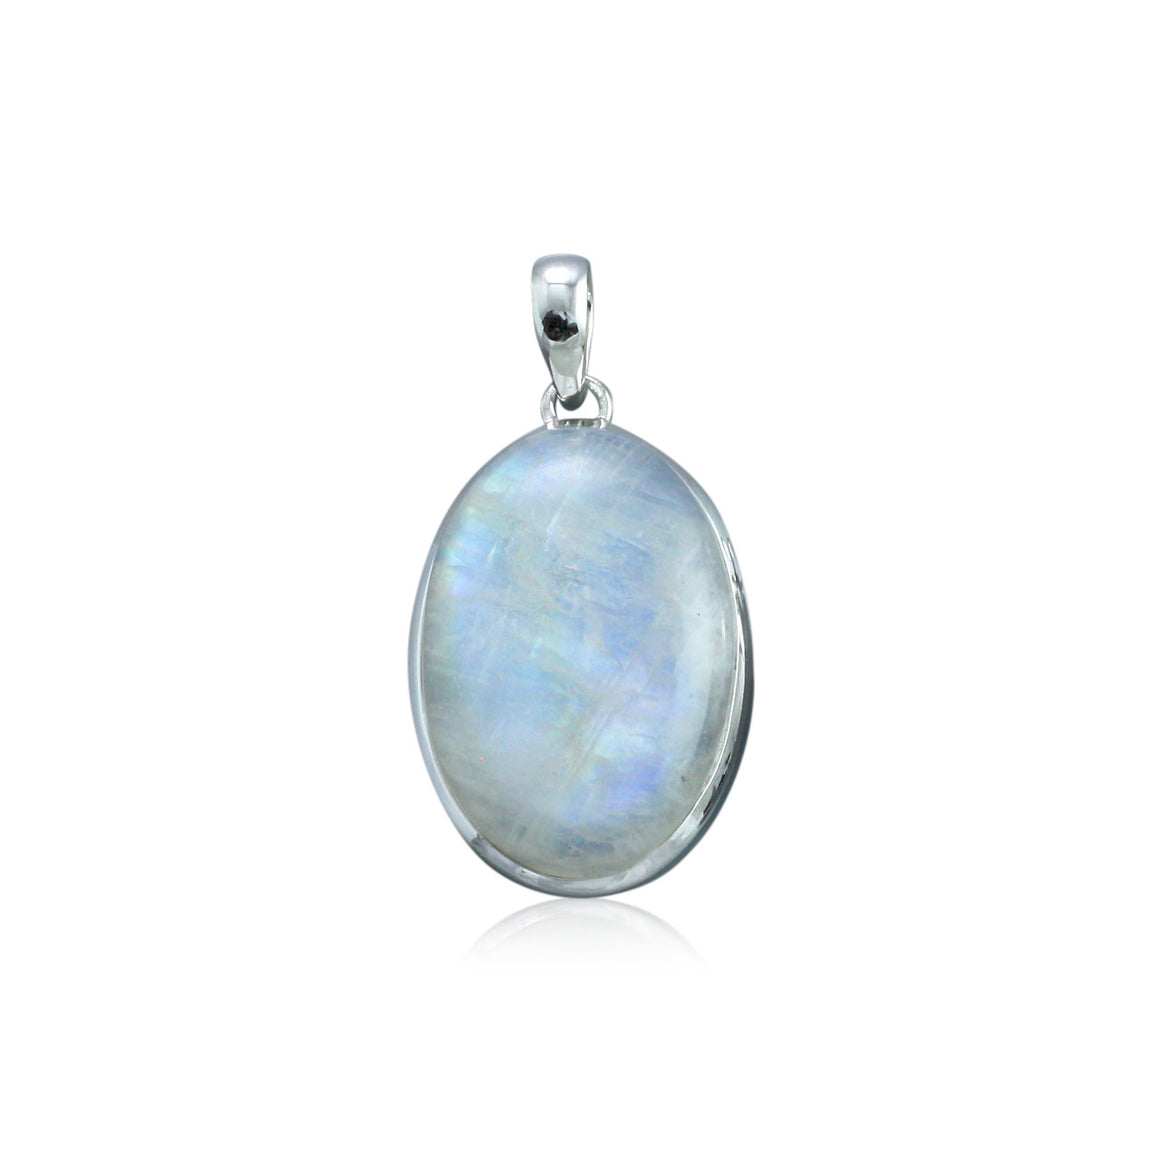 Rainbow Moonstone Pendant - One of a Kind